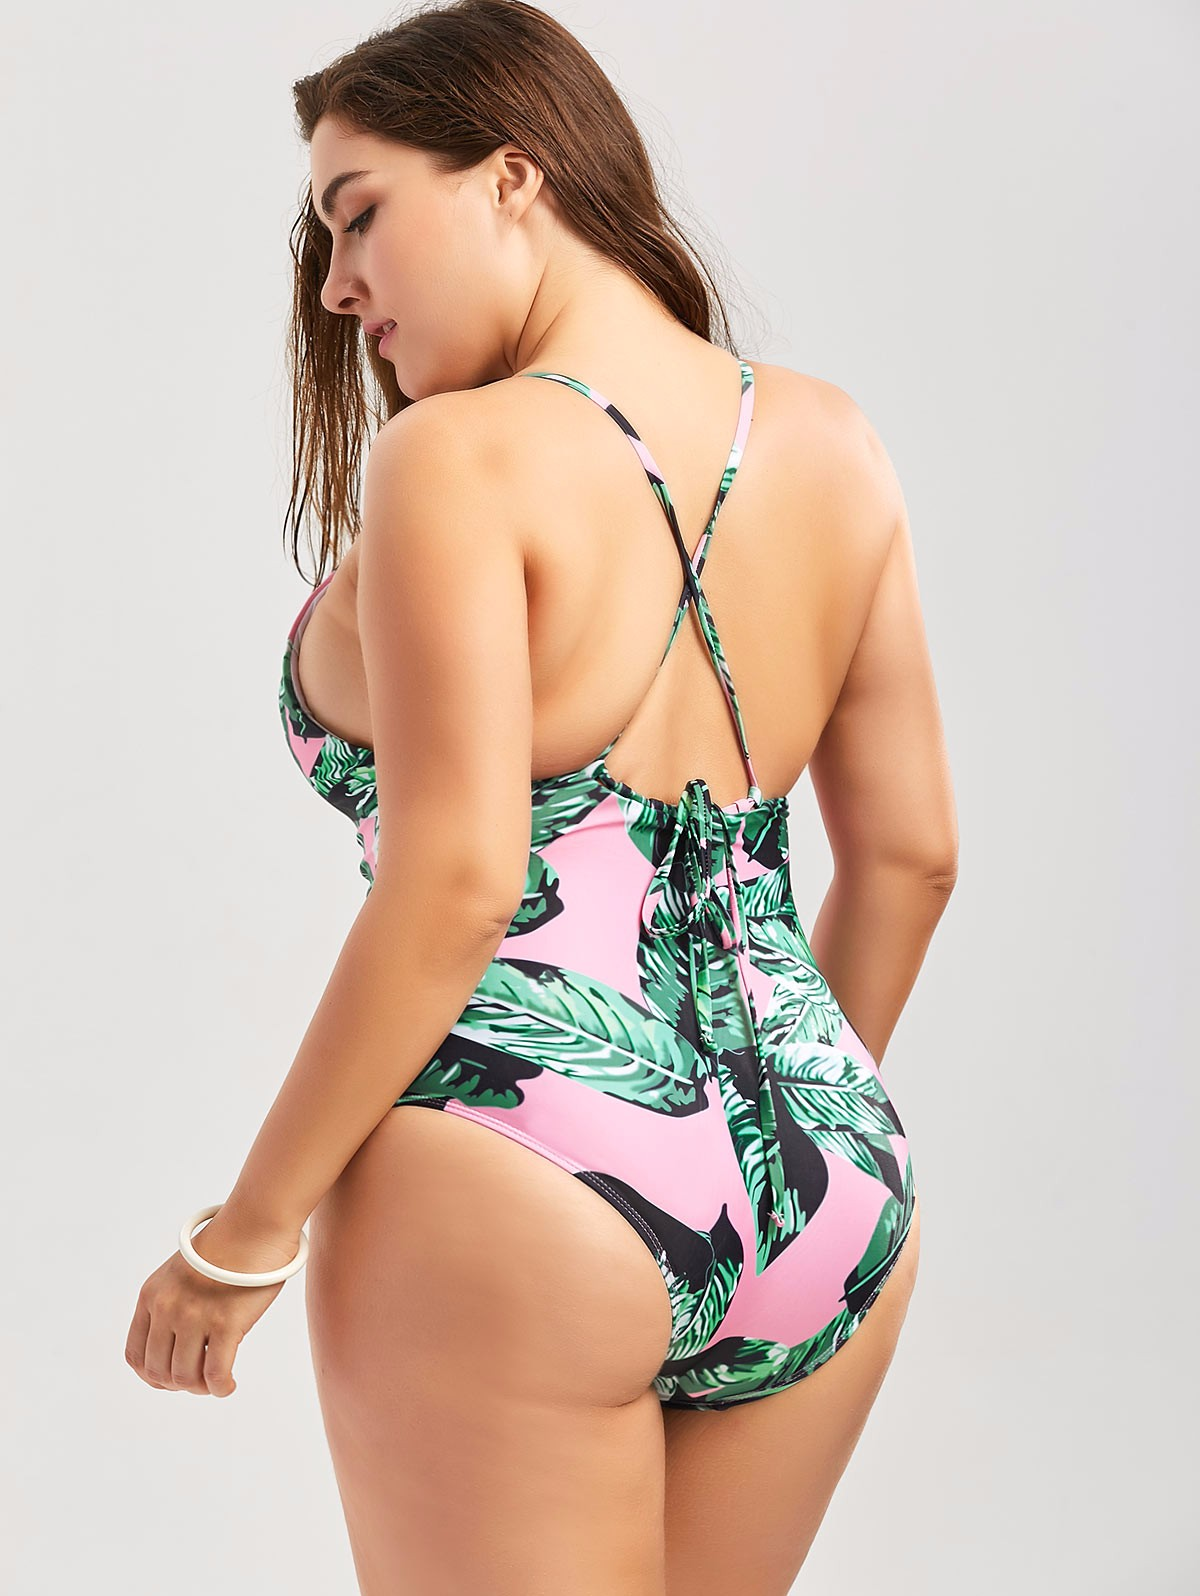 Big yards Bathing Suits Manufacturers, Big yards Bathing Suits Factory, Supply Big yards Bathing Suits